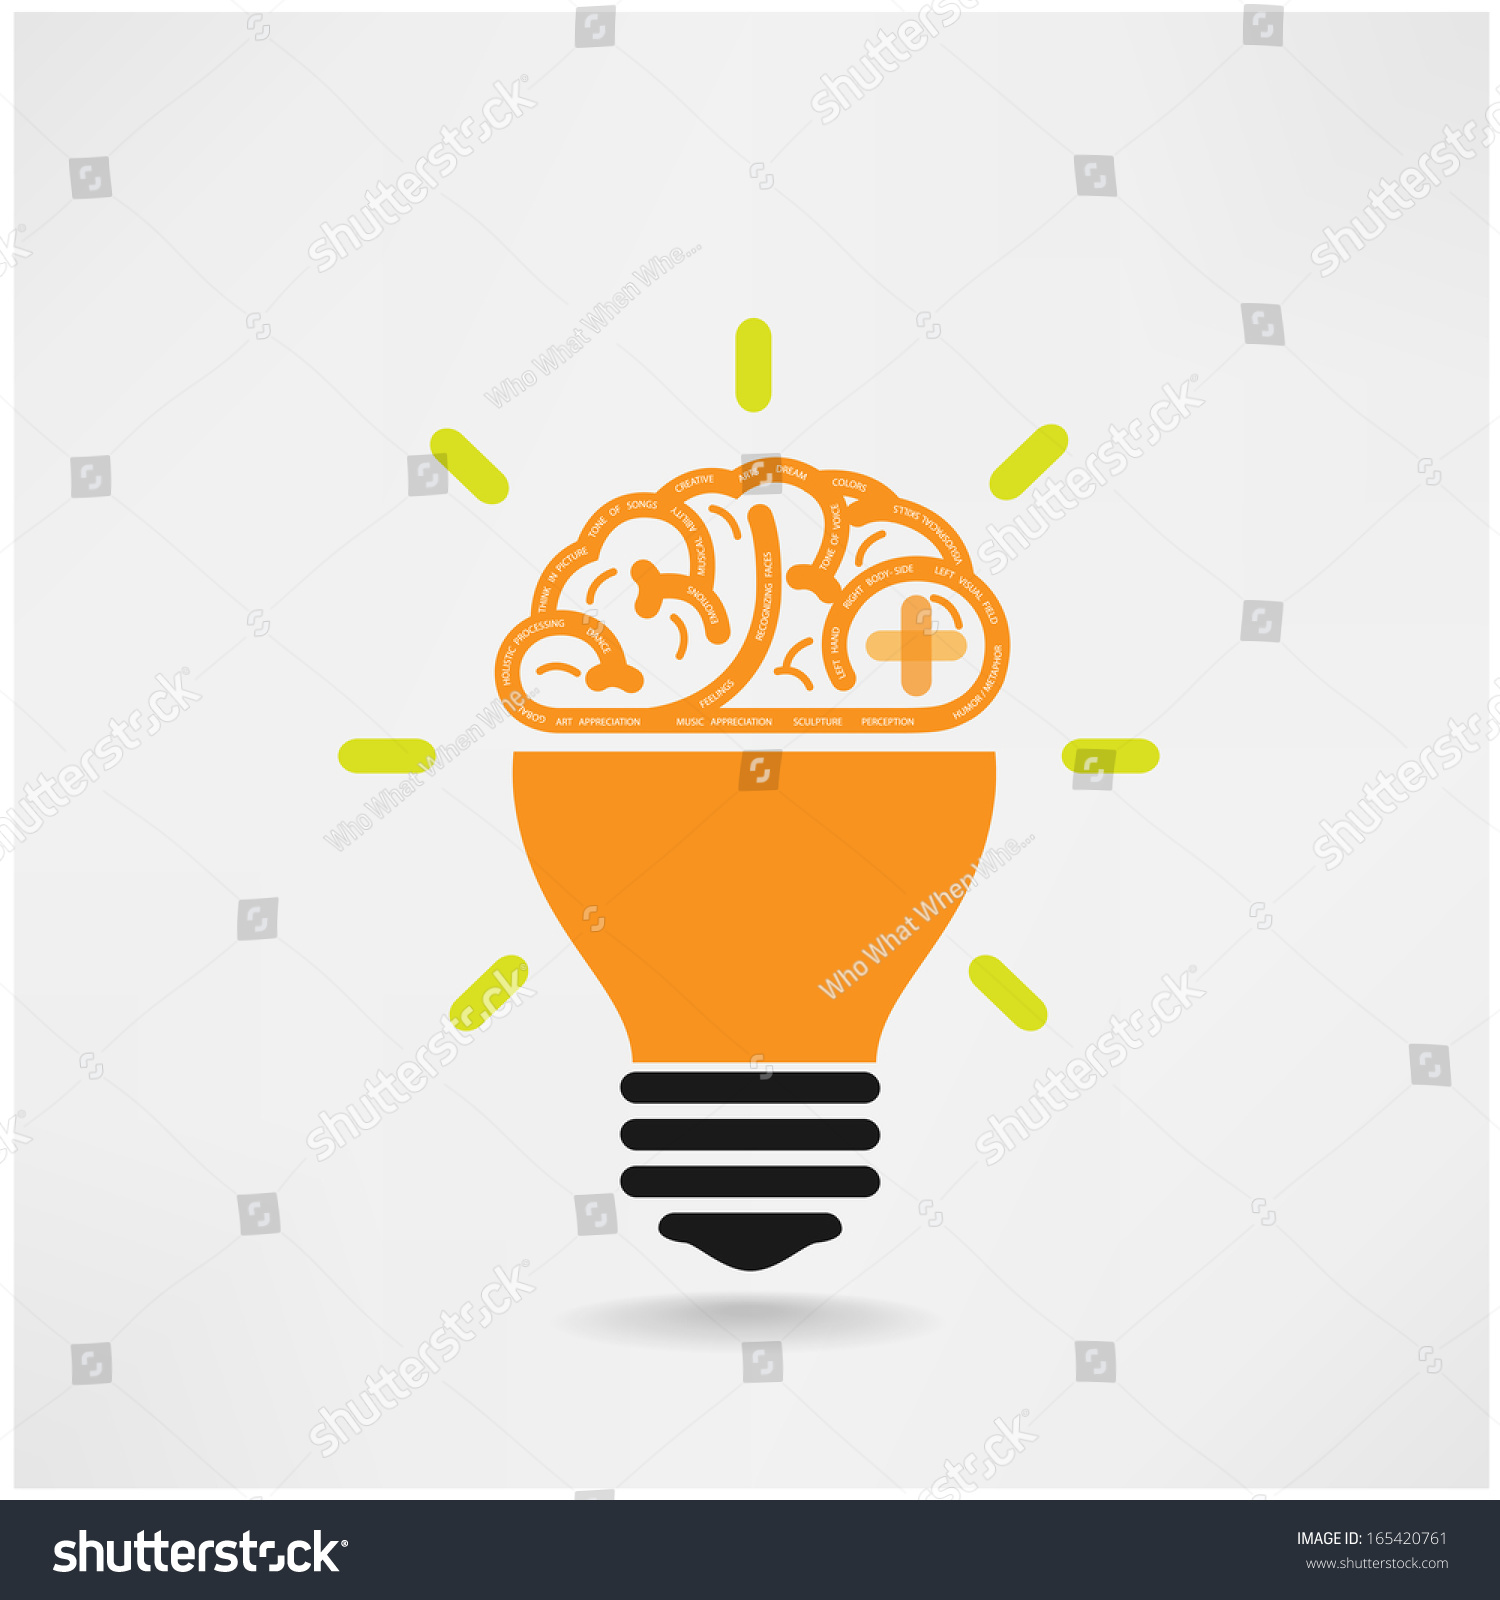 Idea Design flat design colorful vector illustration concept for creativity big idea creative work starting new project Save To A Lightbox